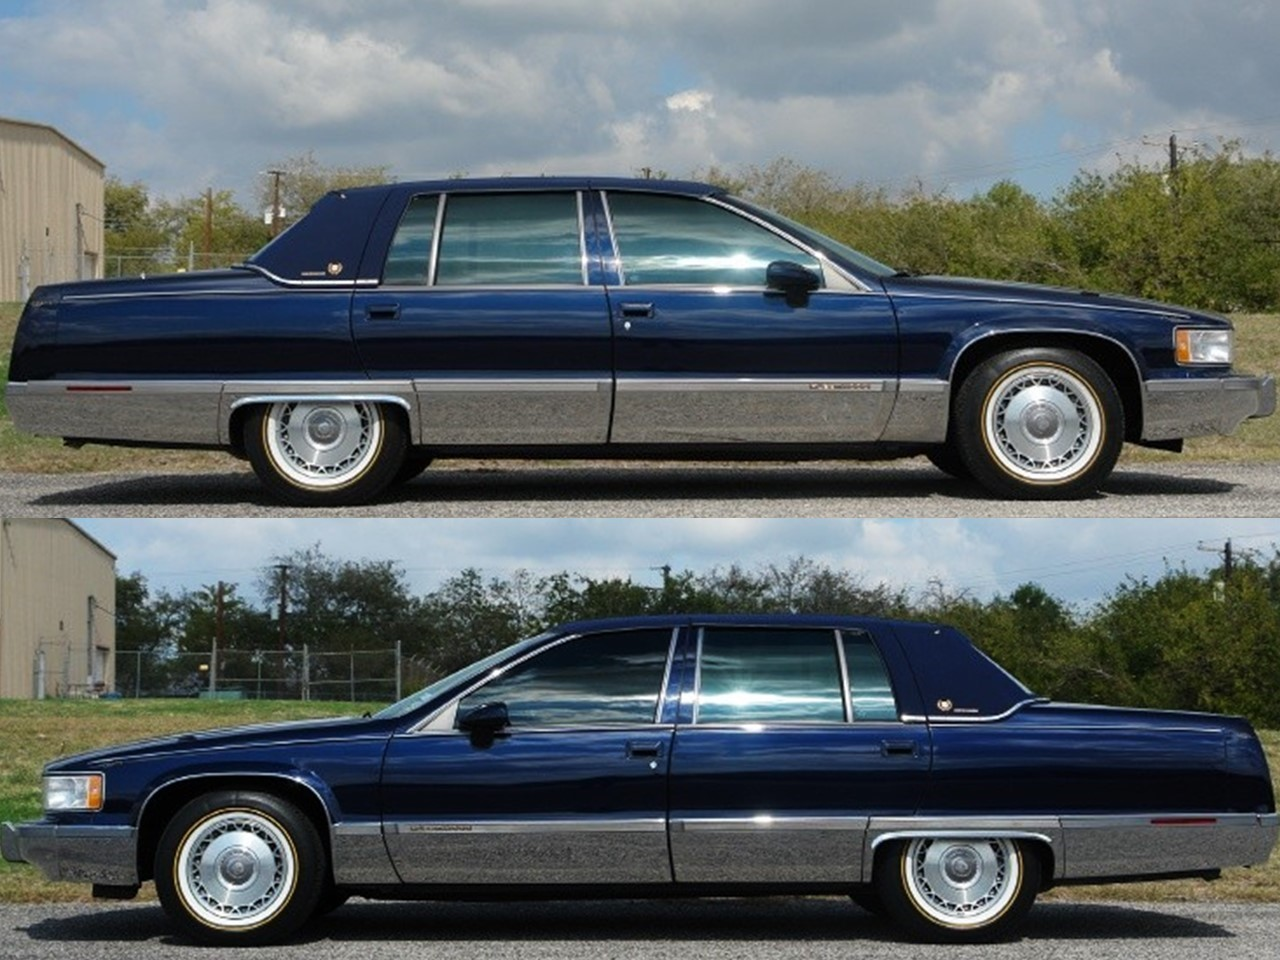 Fleetwood could be compared to a luxurious club room on wheels. Its  spacious cloth or leather trimmed cabin was available in two distinctive  trim levels.